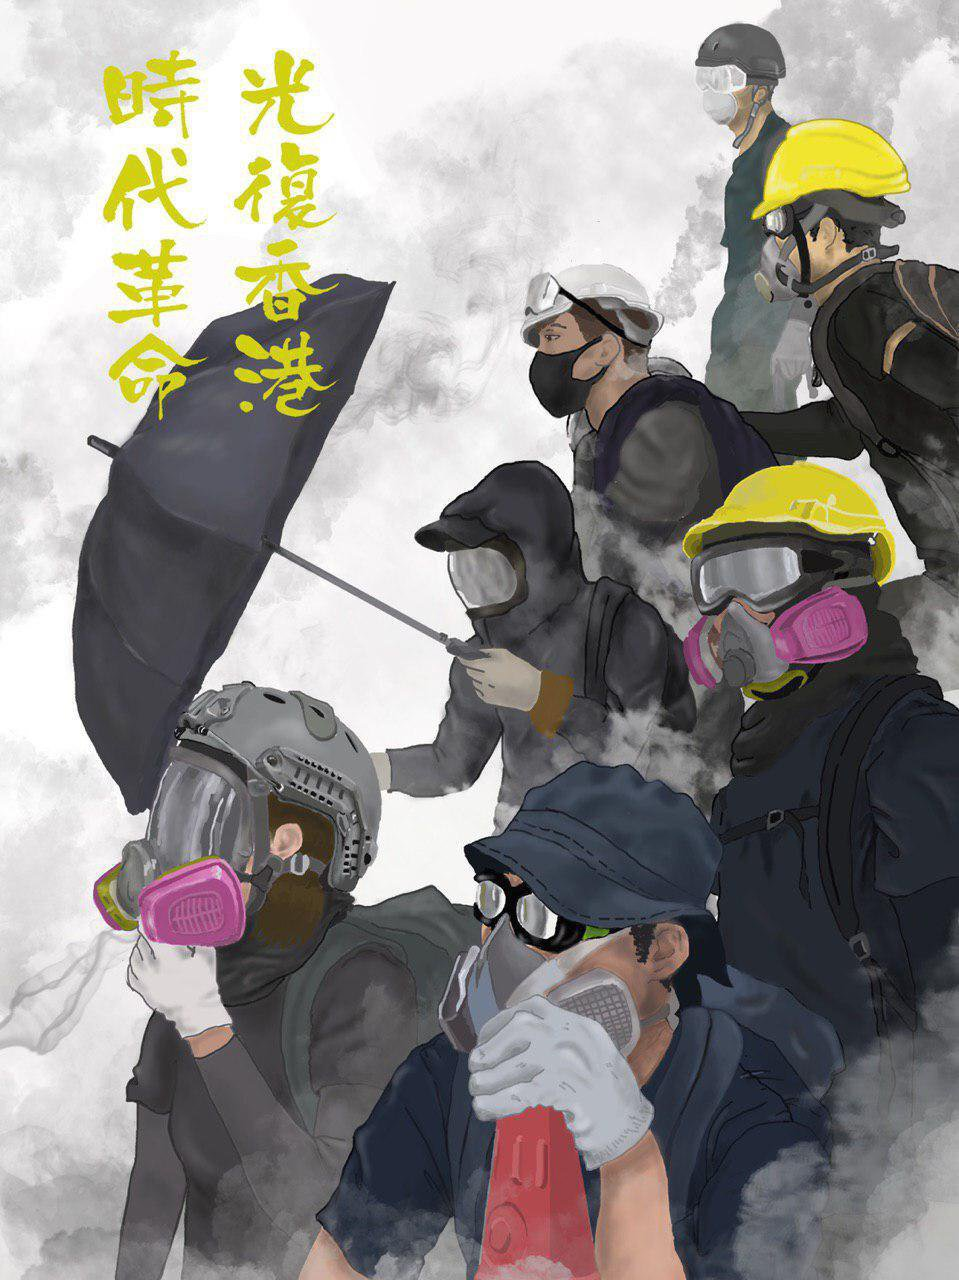 An illustration of seven frontline protestors standing in a dense cloud of smoke, some in hard hats, a few in just soft hats. Most are wearing eye protection in the form of goggles, swim goggles, or a full-face respirator. Everyone is masked. The protestor in the bottom center of the image has his hand on a traffic cone.